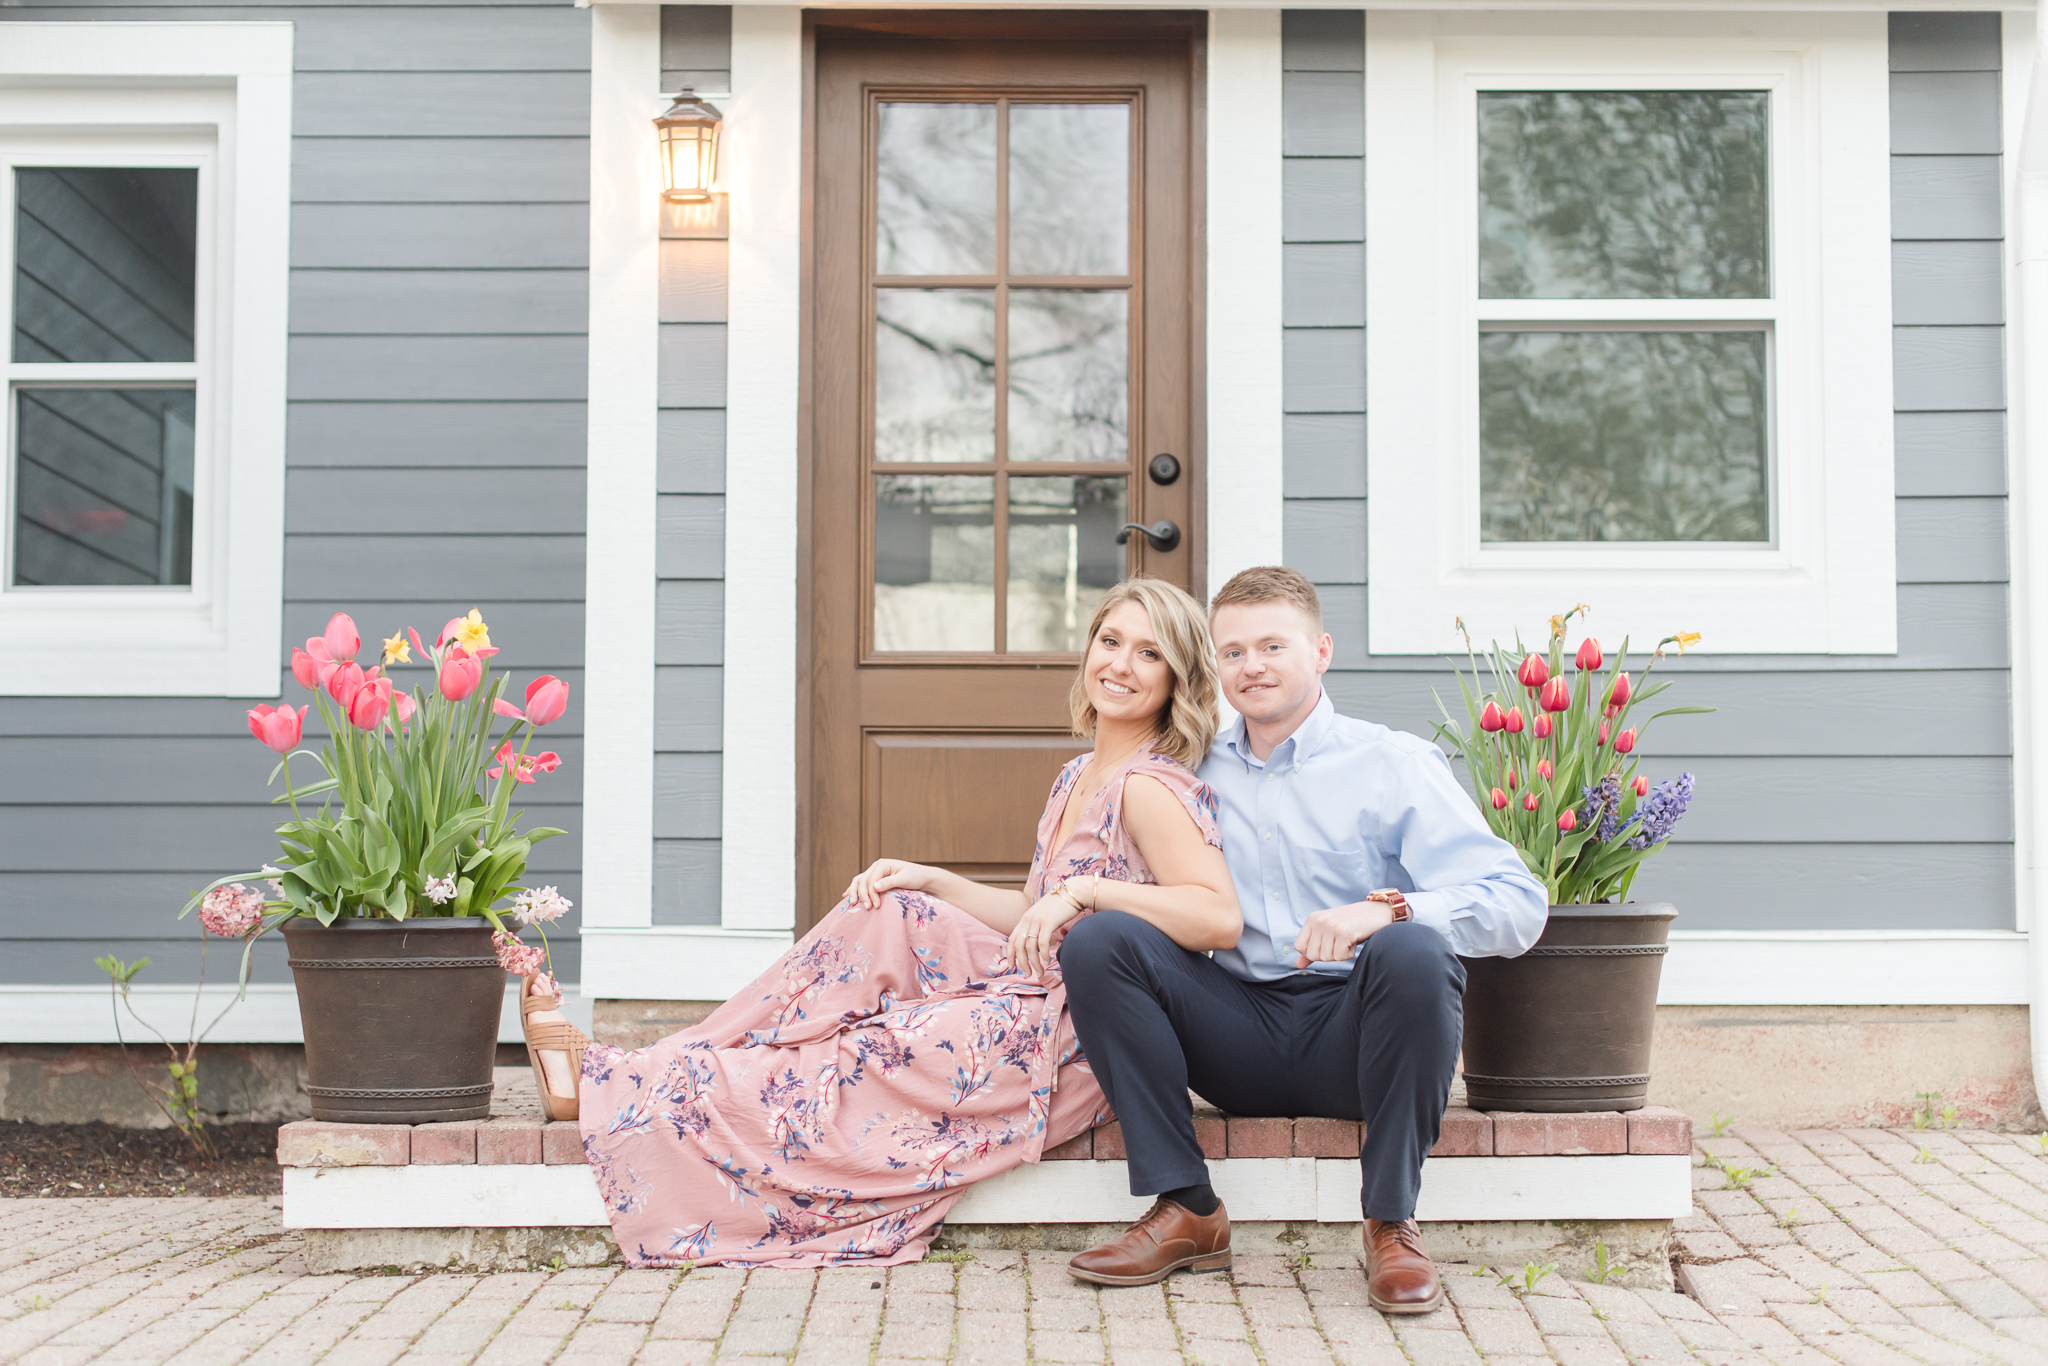 Richie Woods Nature Preserve and Mustard Seed Gardens Engagement Session Wedding Photos-50.jpg